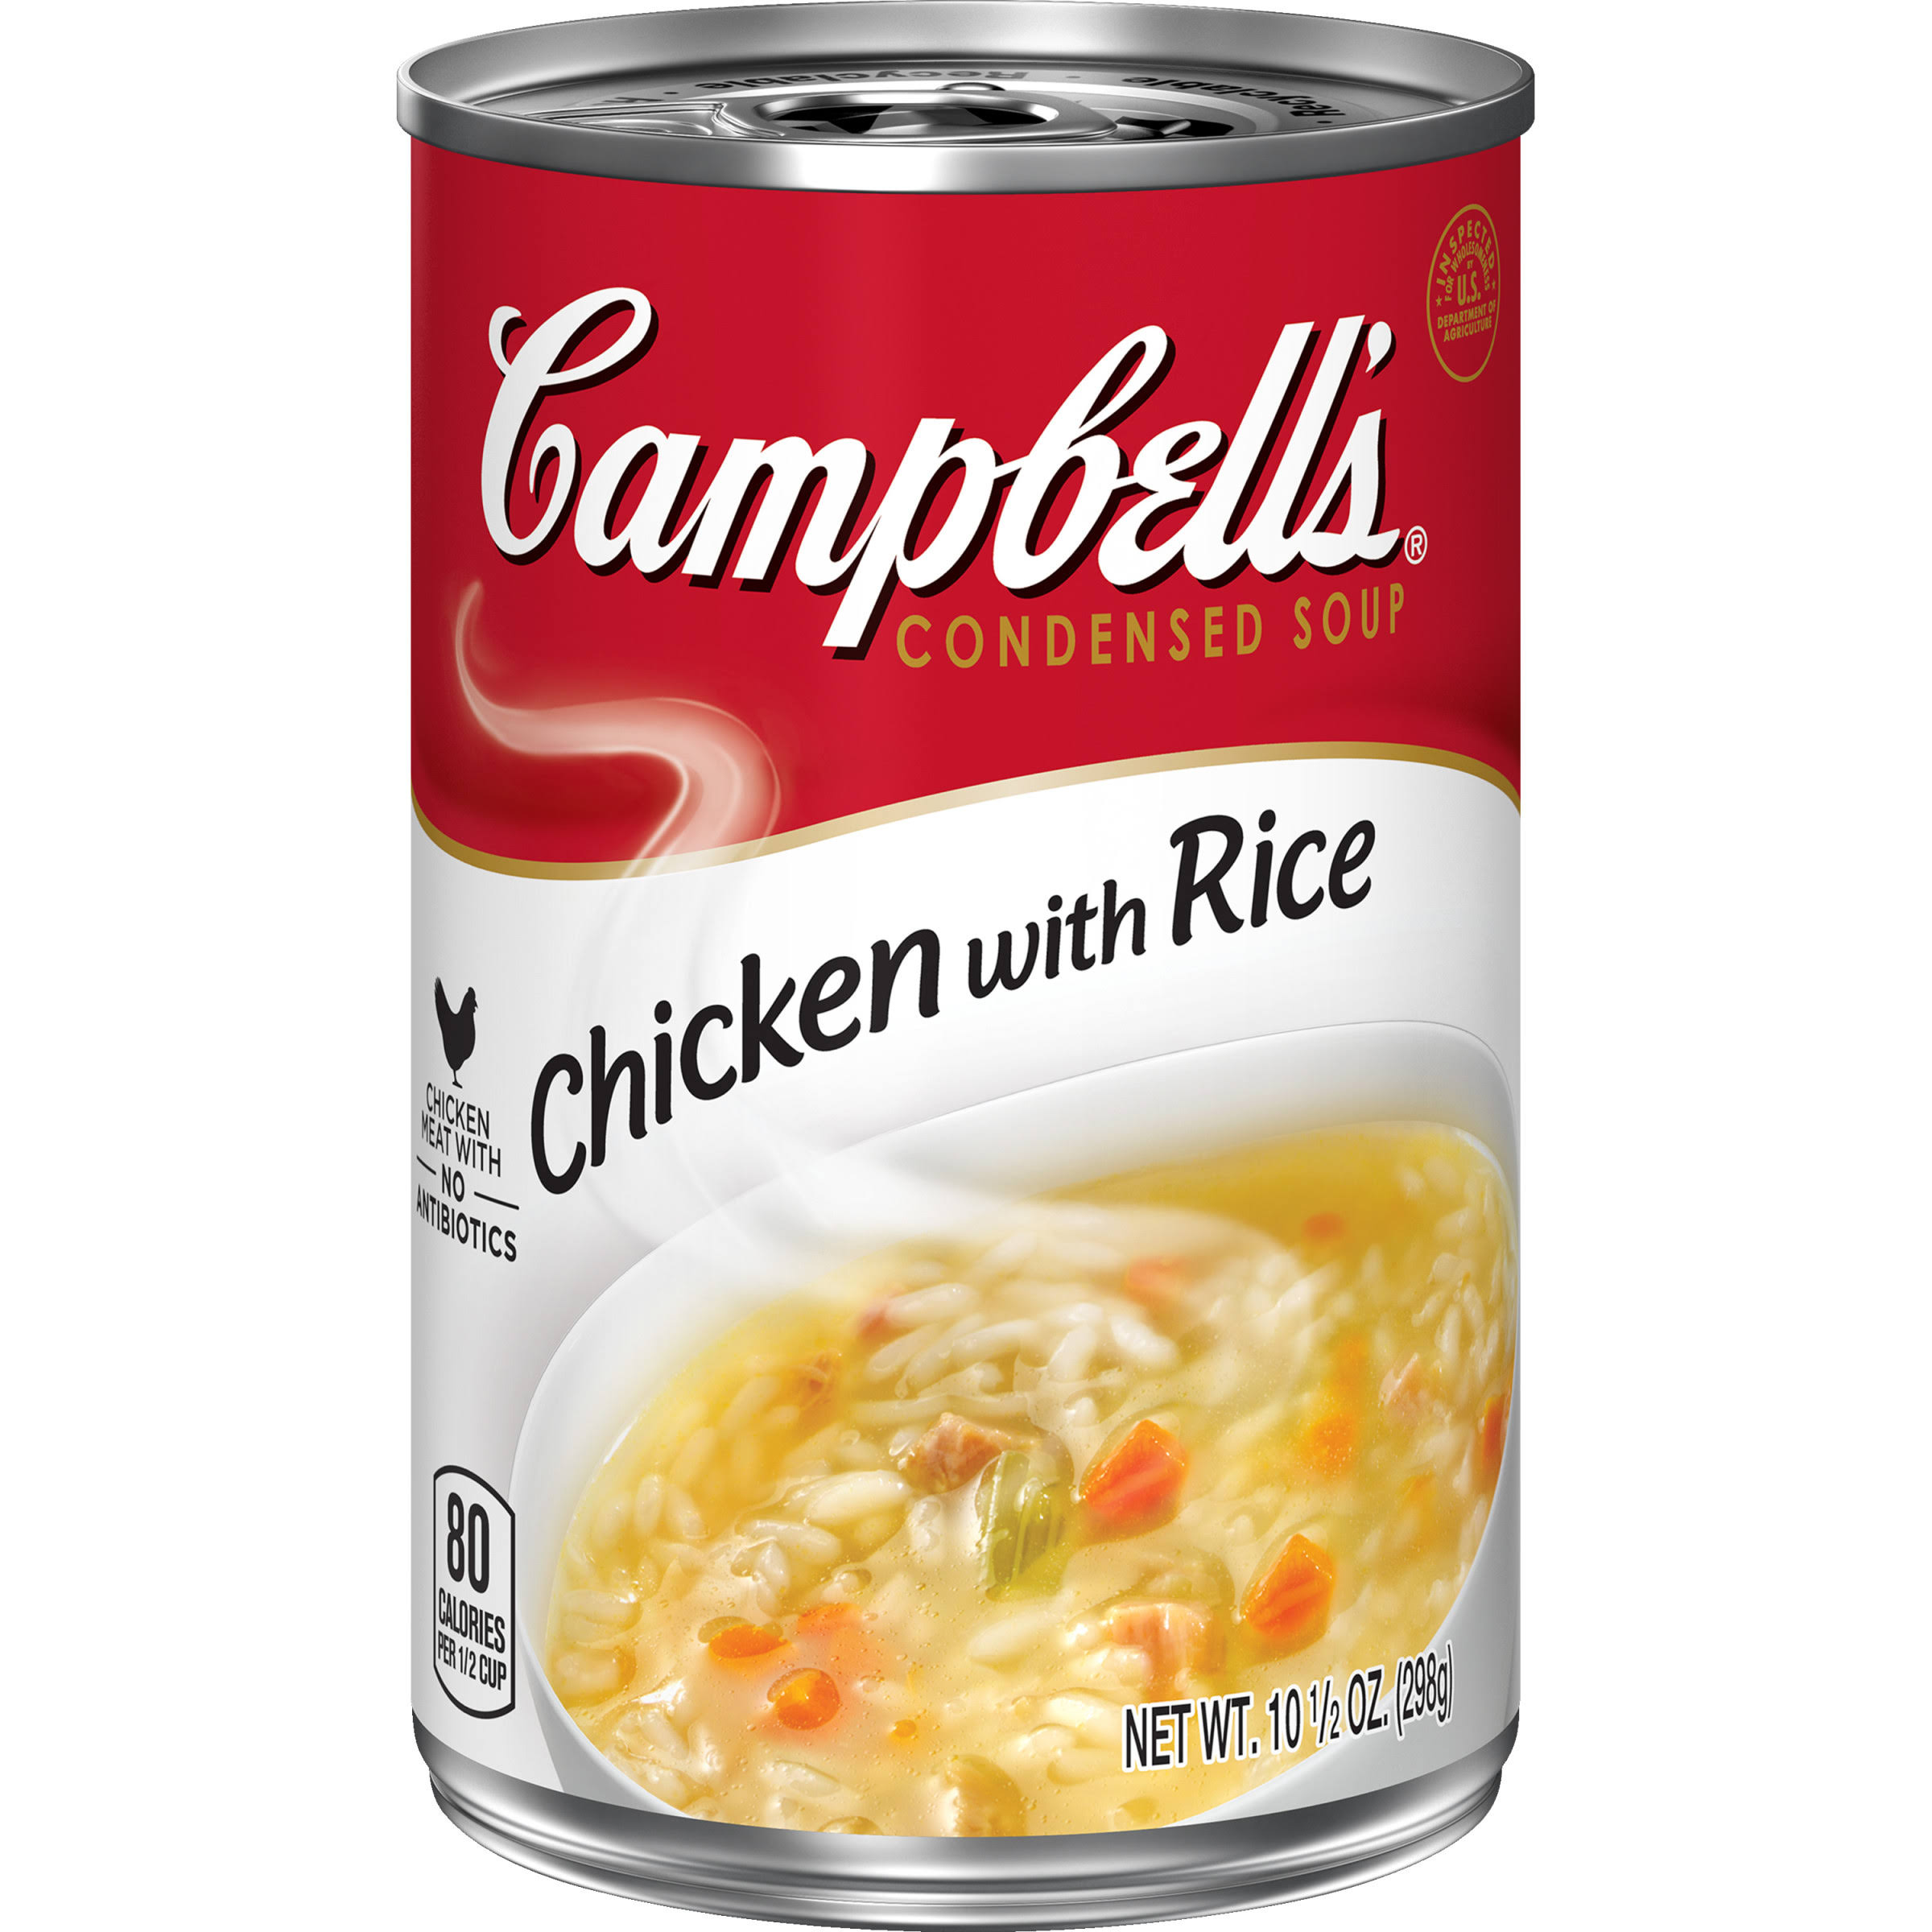 Campbell's Condensed Soup - Chicken with Rice, 10 1/2oz